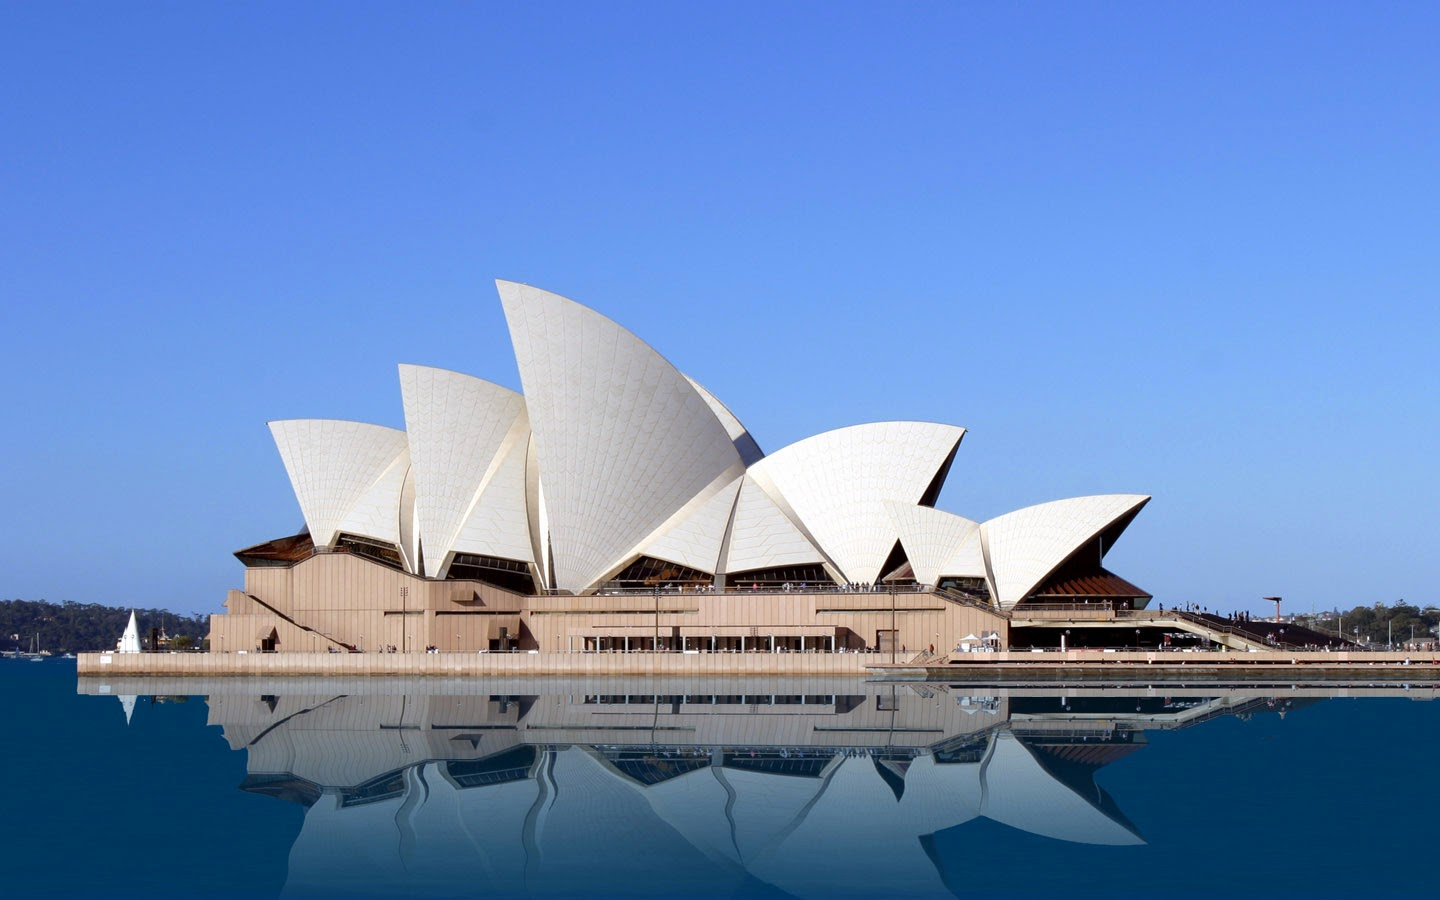 The Sydney Opera House, Sydney, New South Wales, Australia.